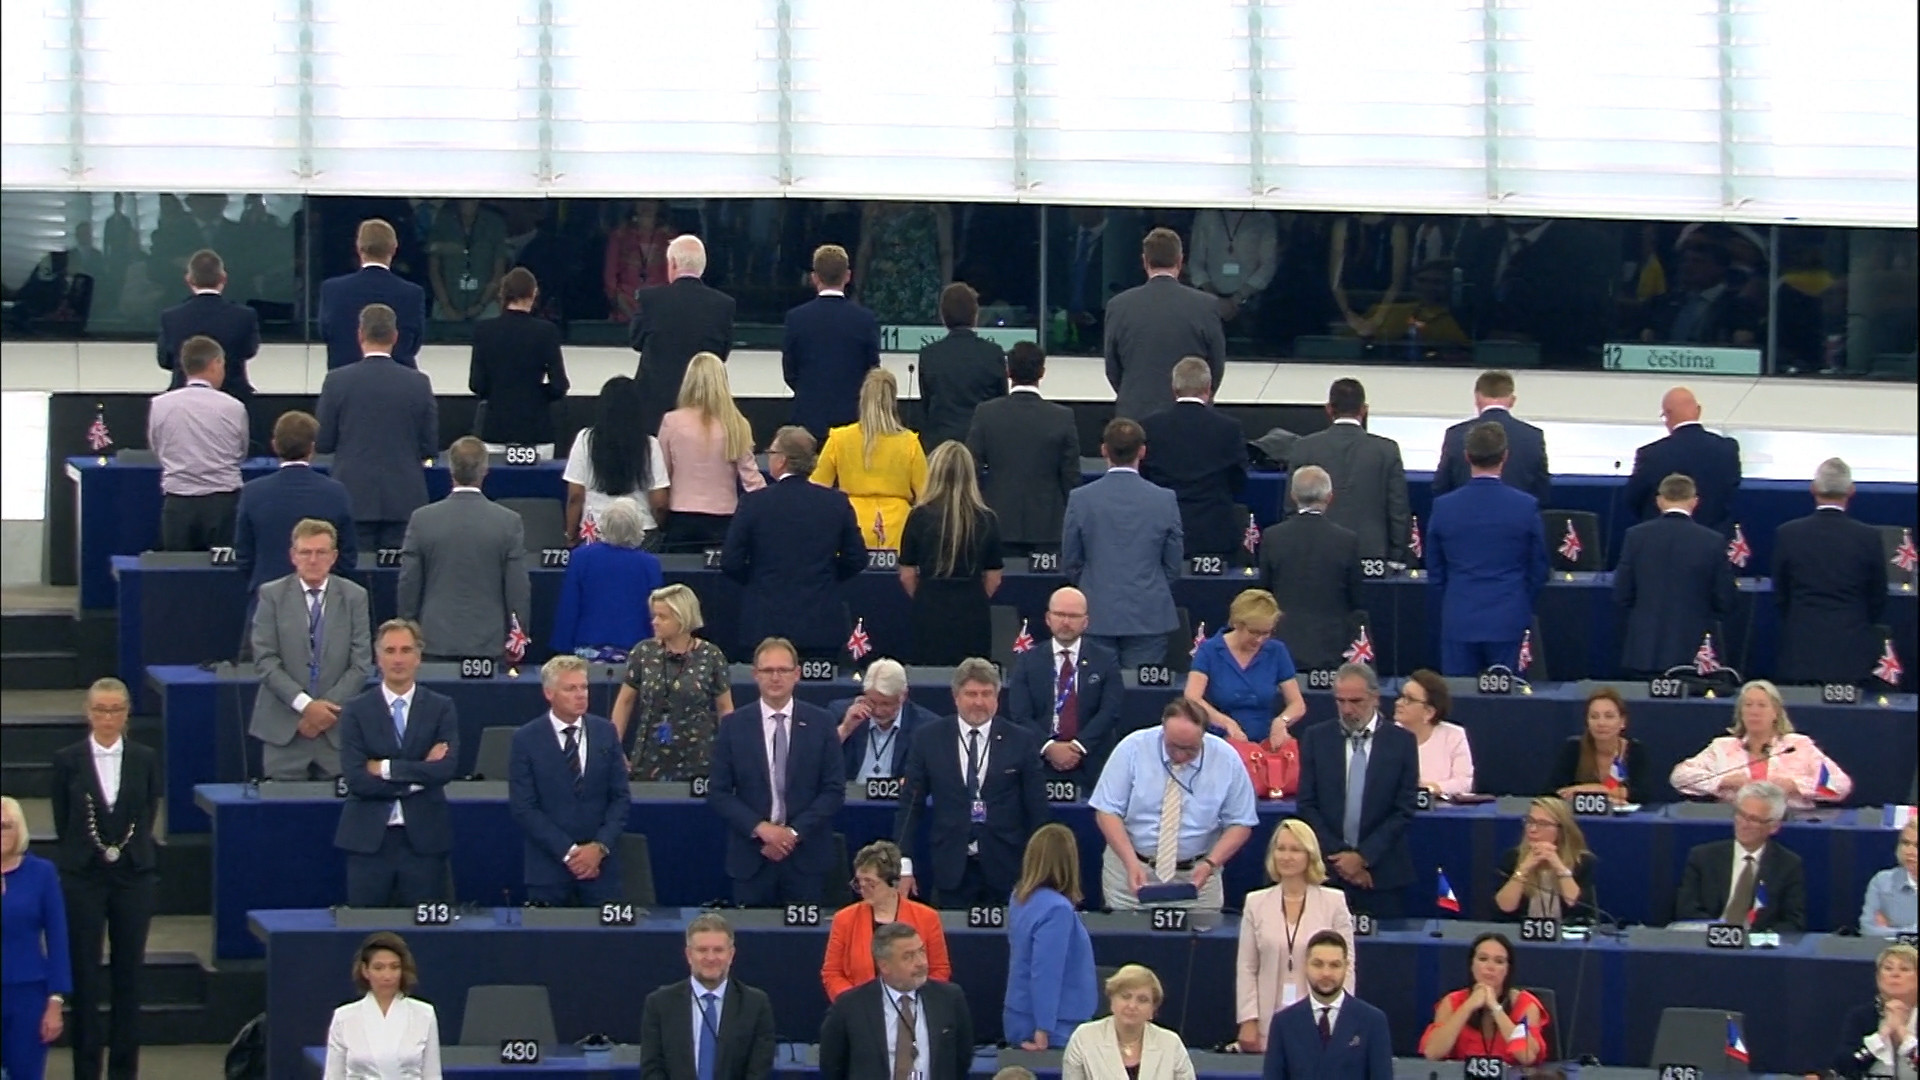 Brexit Party MEPs turned their backs on the EU anthem Ode to Joy on day one of the parliament (EuropaTV/PA)